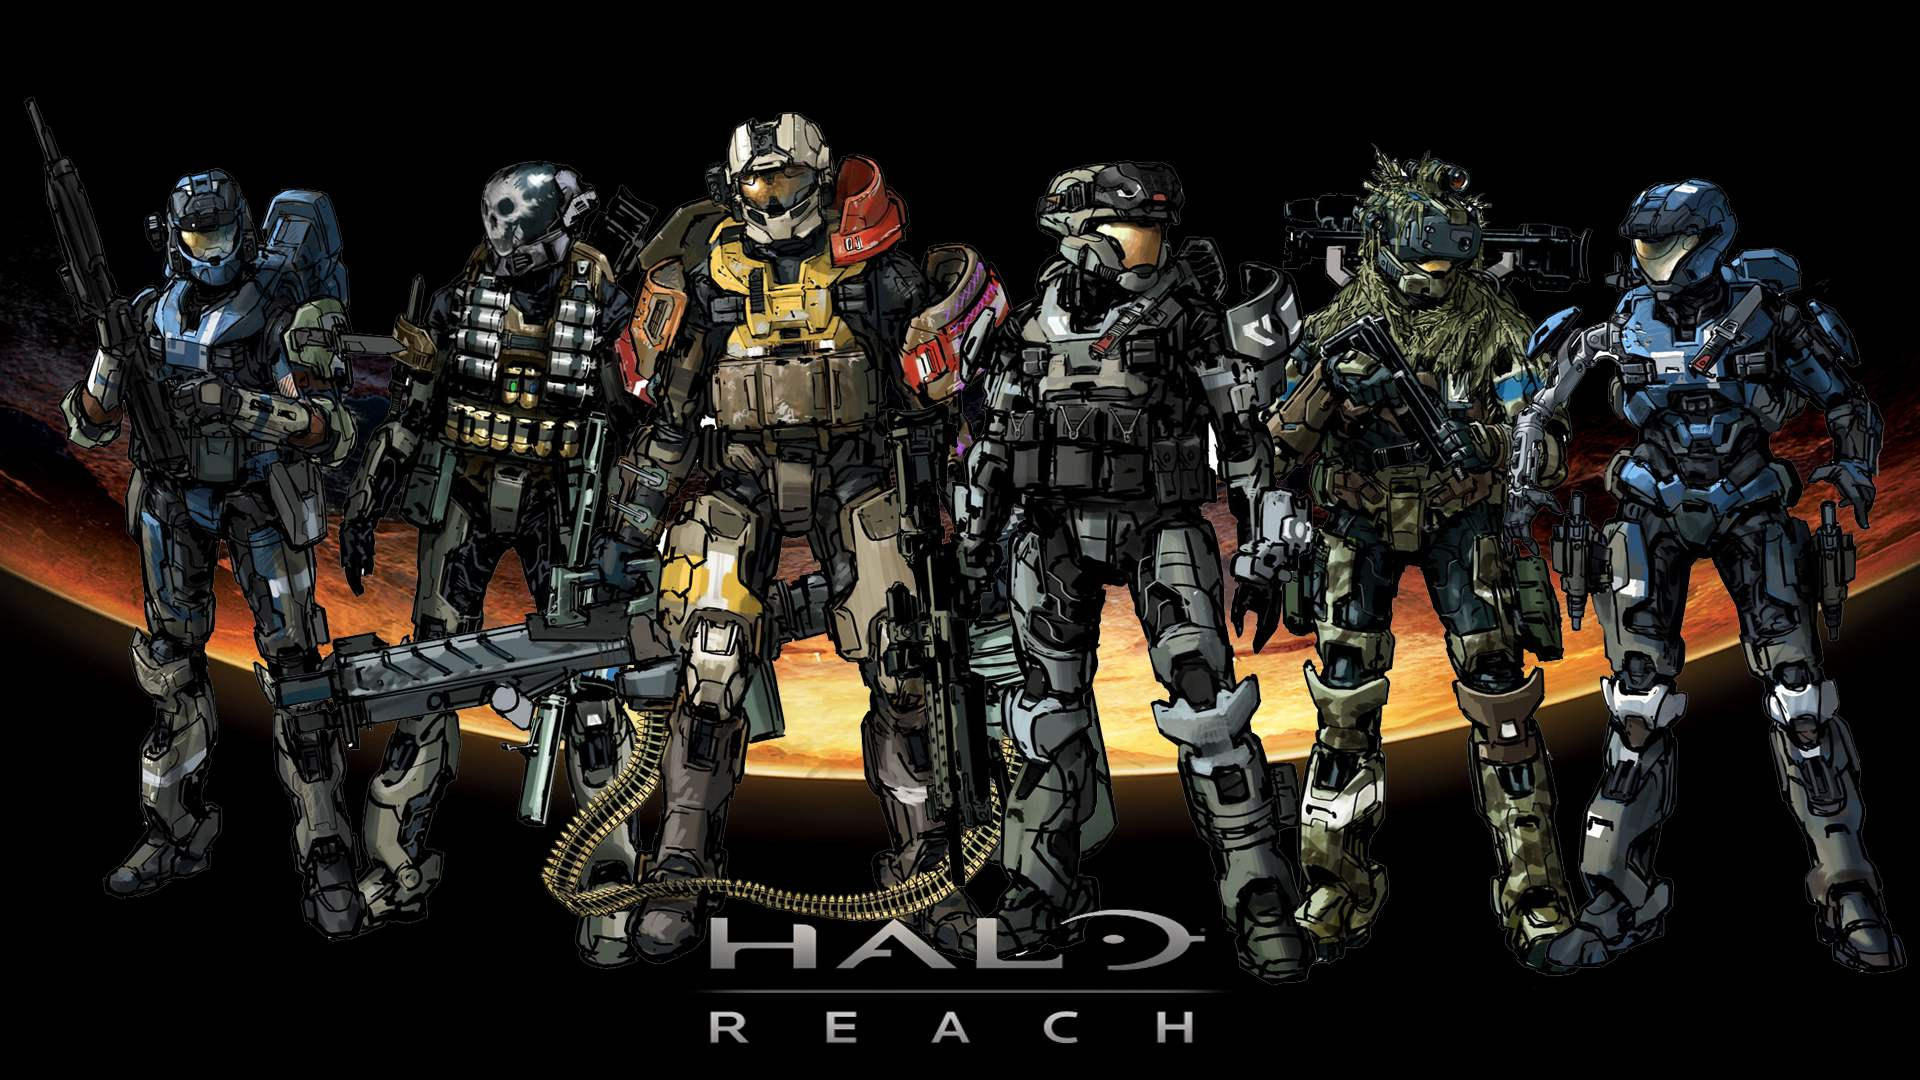 Megapost]Halo Reach Screenshots Wallpapers Comics   Taringa 1920x1080